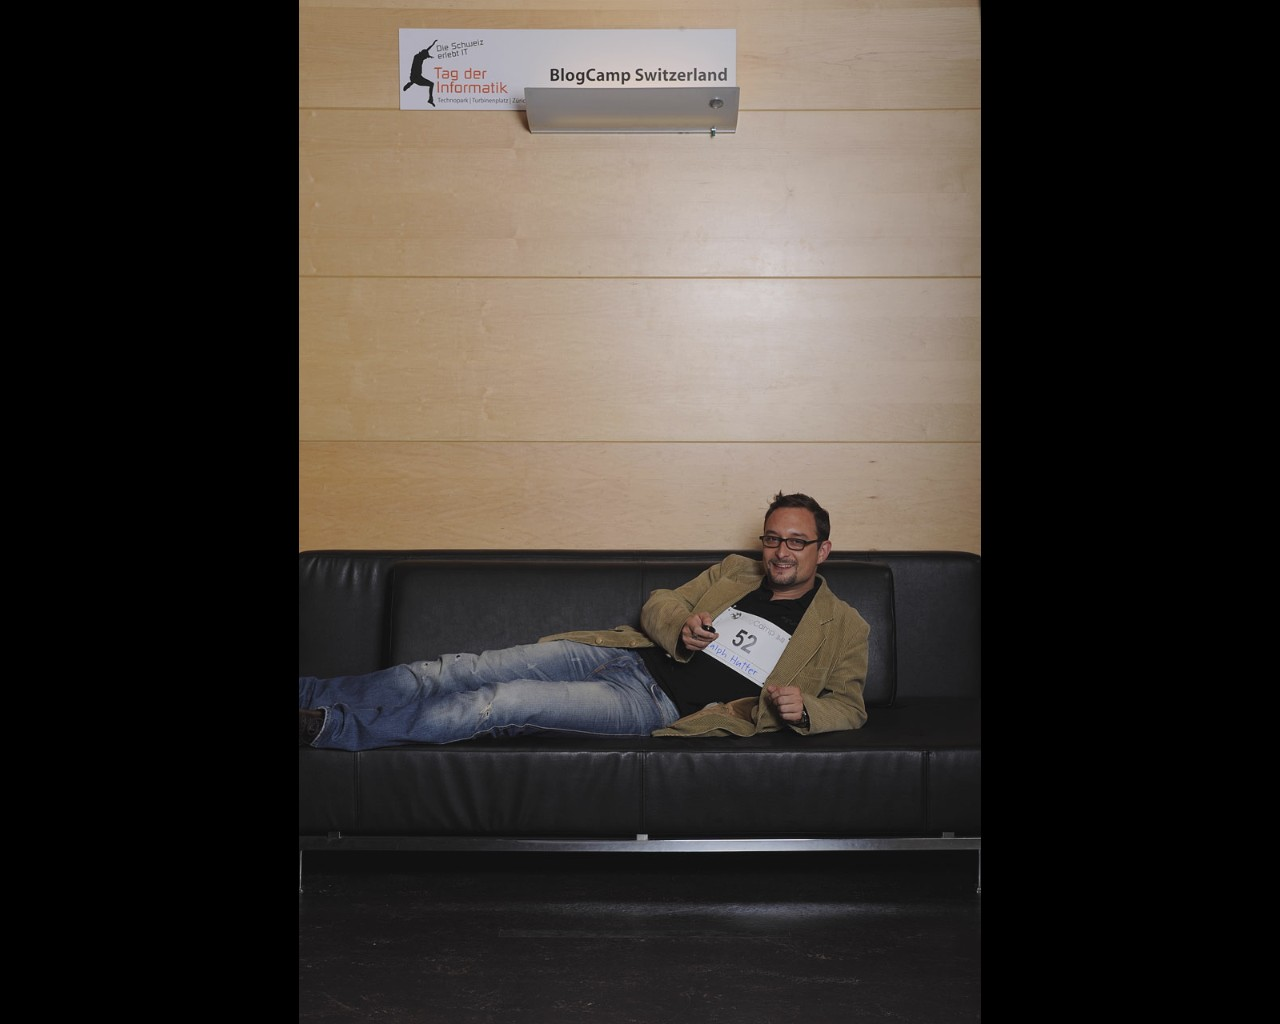 Blog Camp Switzerland 3.0 - Dem Leu sein Sofa.